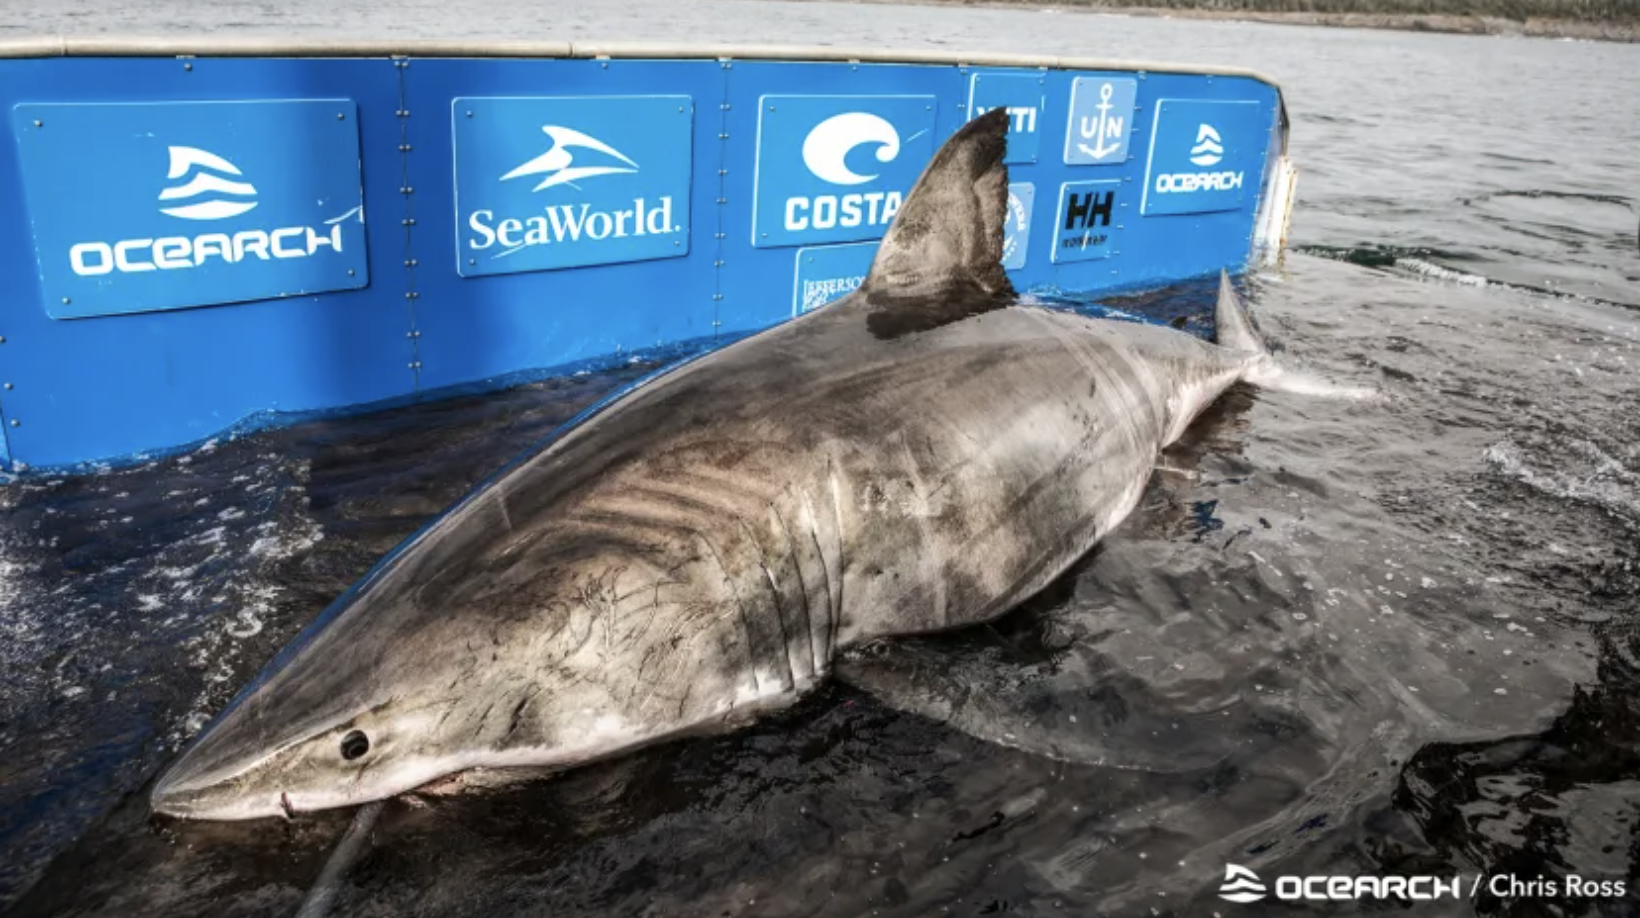 Nukumi, the 17-foot long great white shark found off Nova Scotia, is roughly 50 years old.